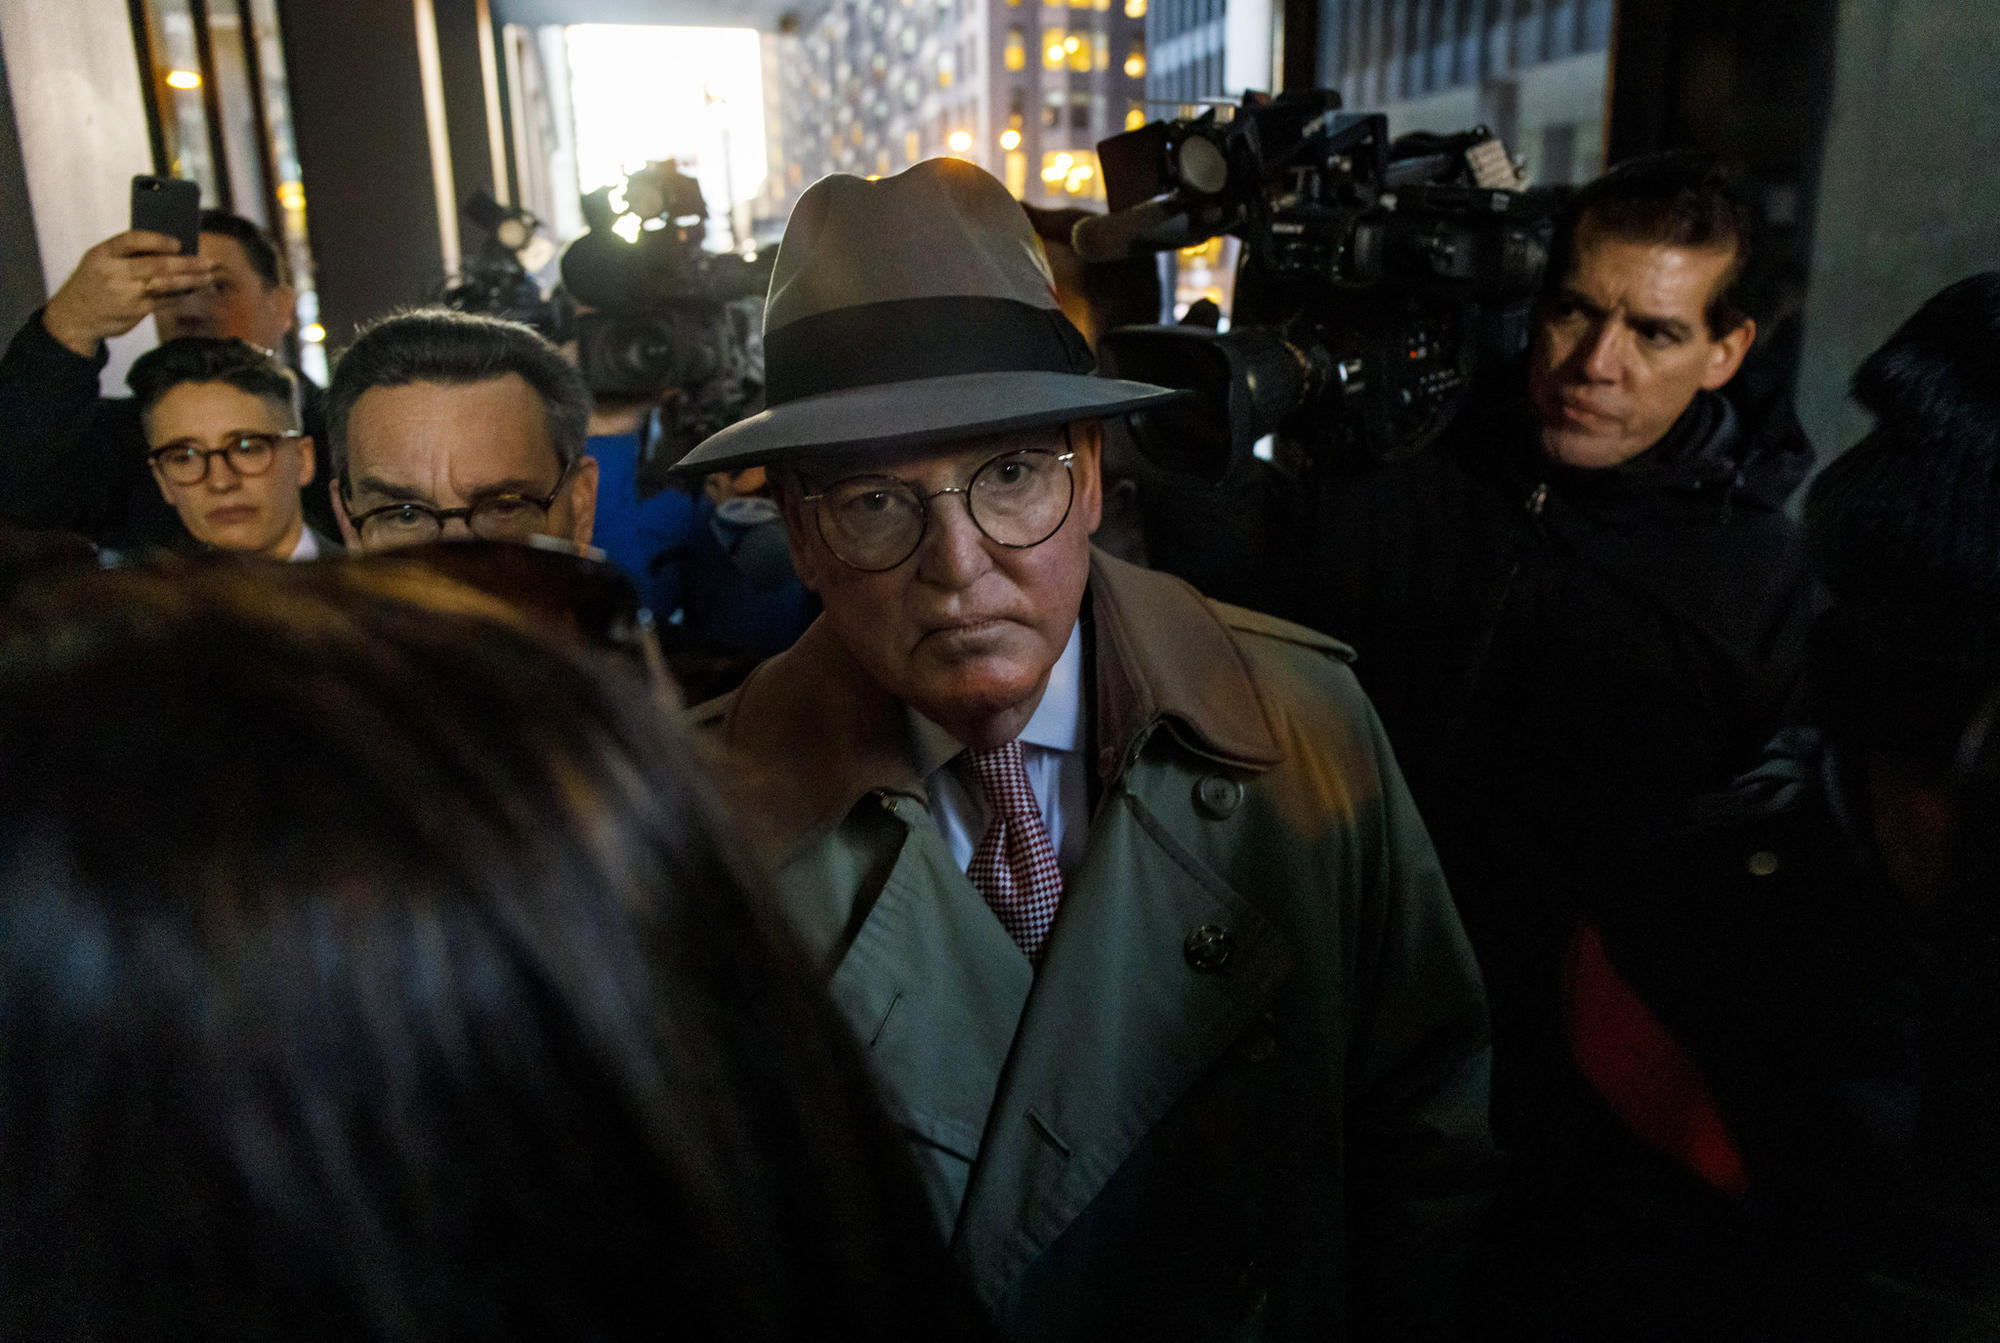 Feds Charge Ald Edward Burke Allege Wiretap On Cellphone Captures